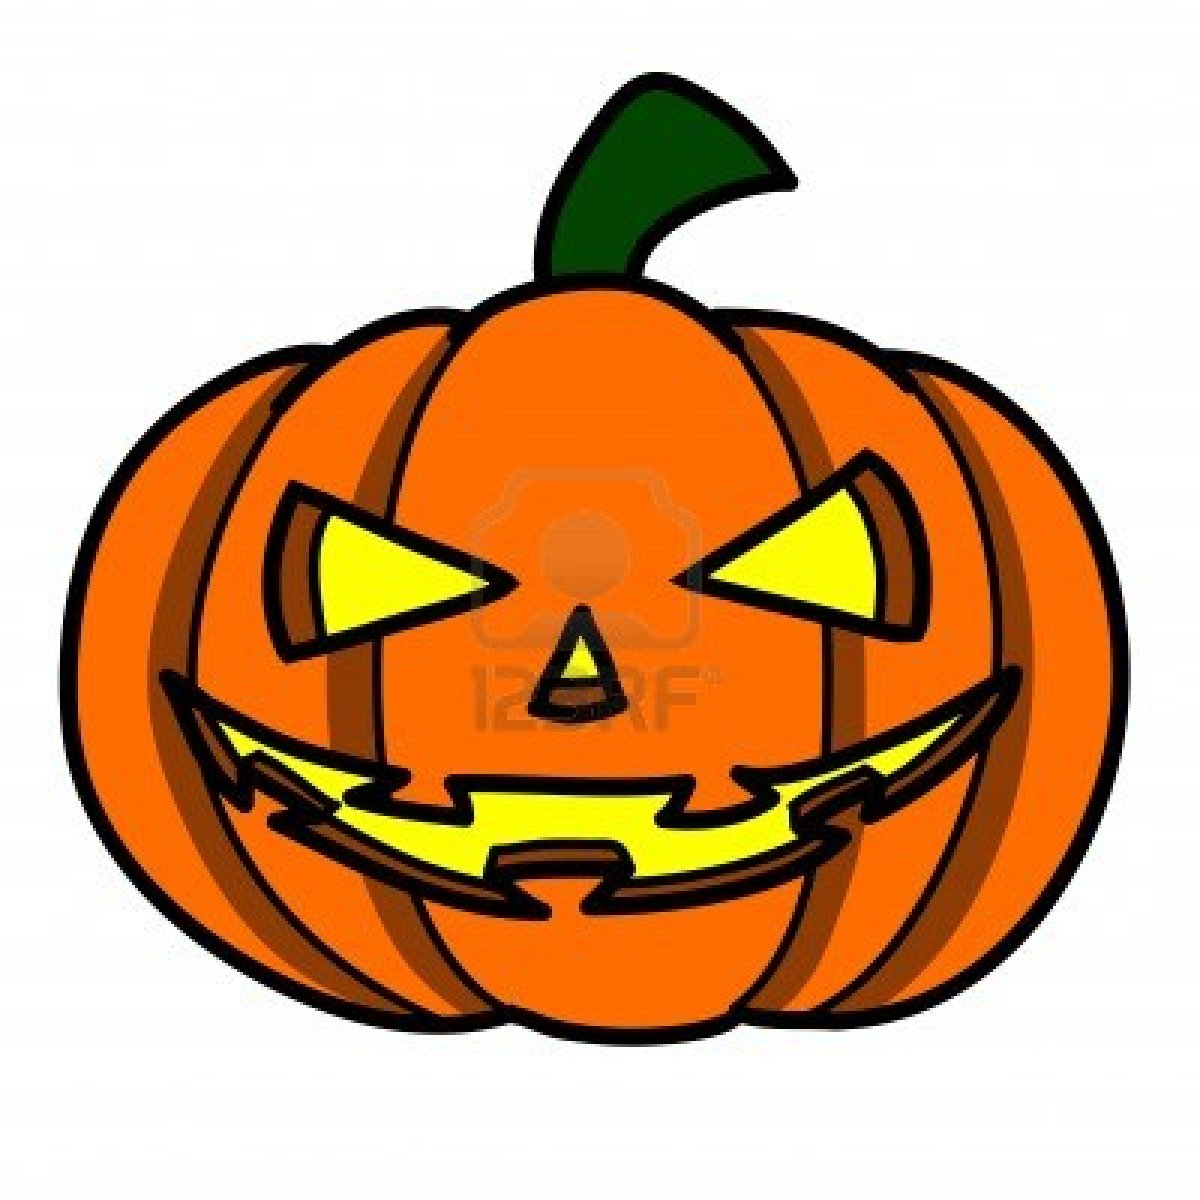 Halloween Cartoon Images - Cliparts.co